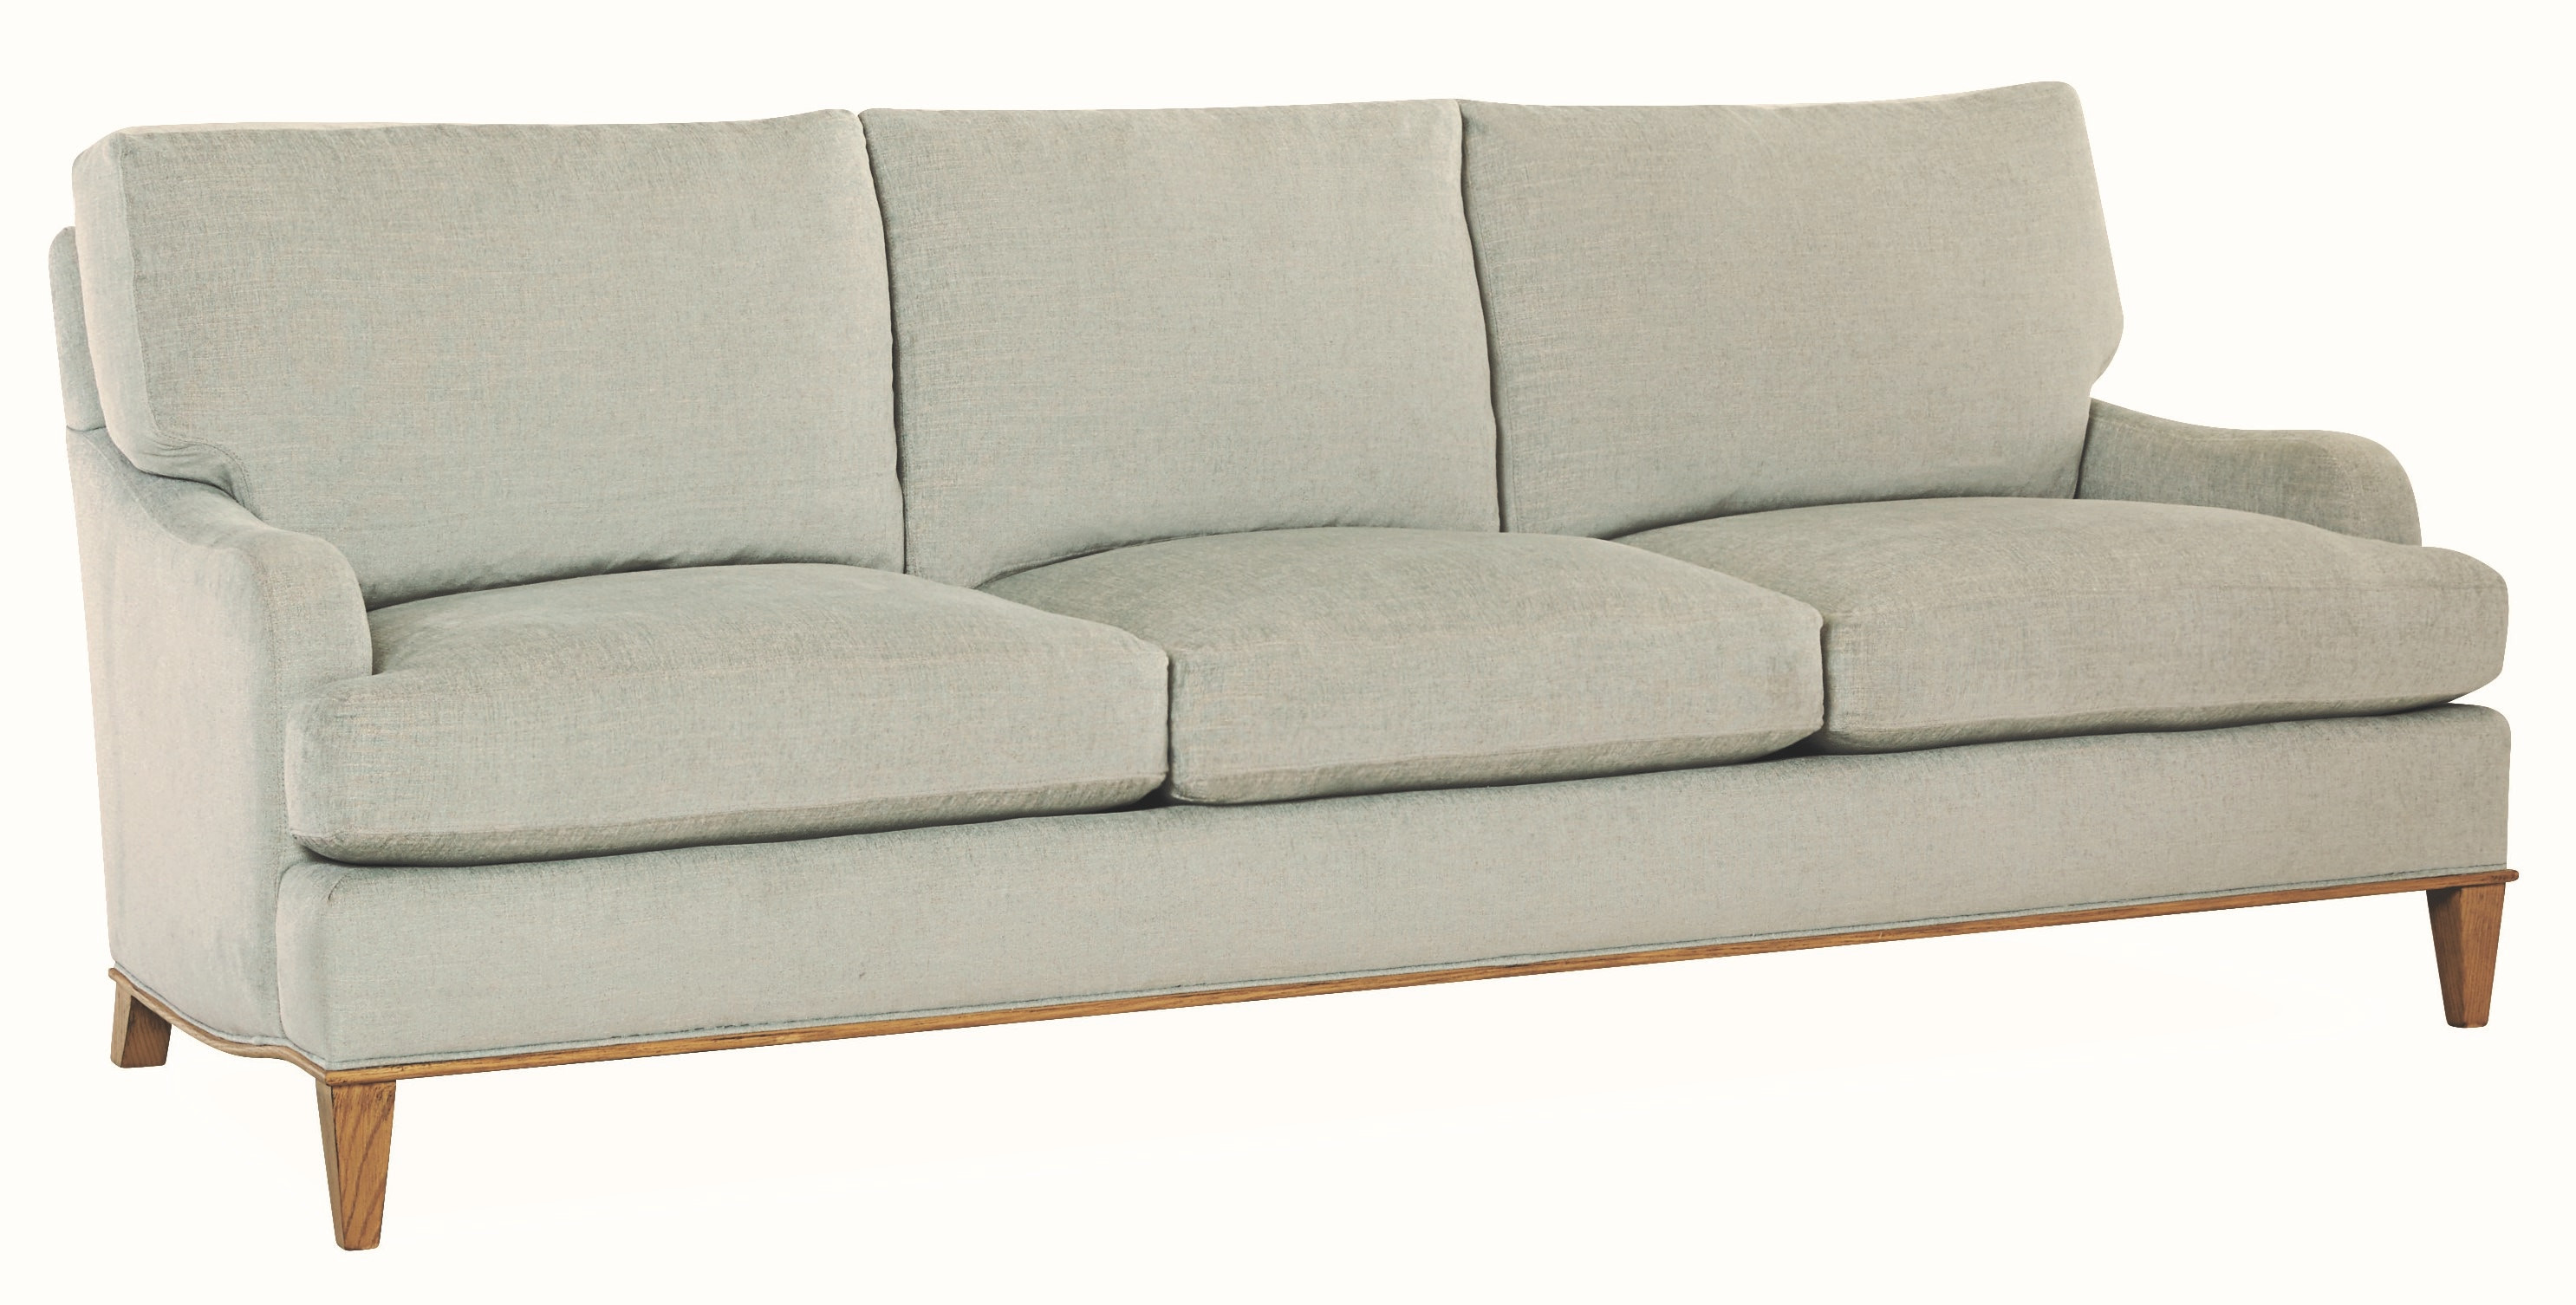 Incroyable Lee Industries Sofa 1303 03